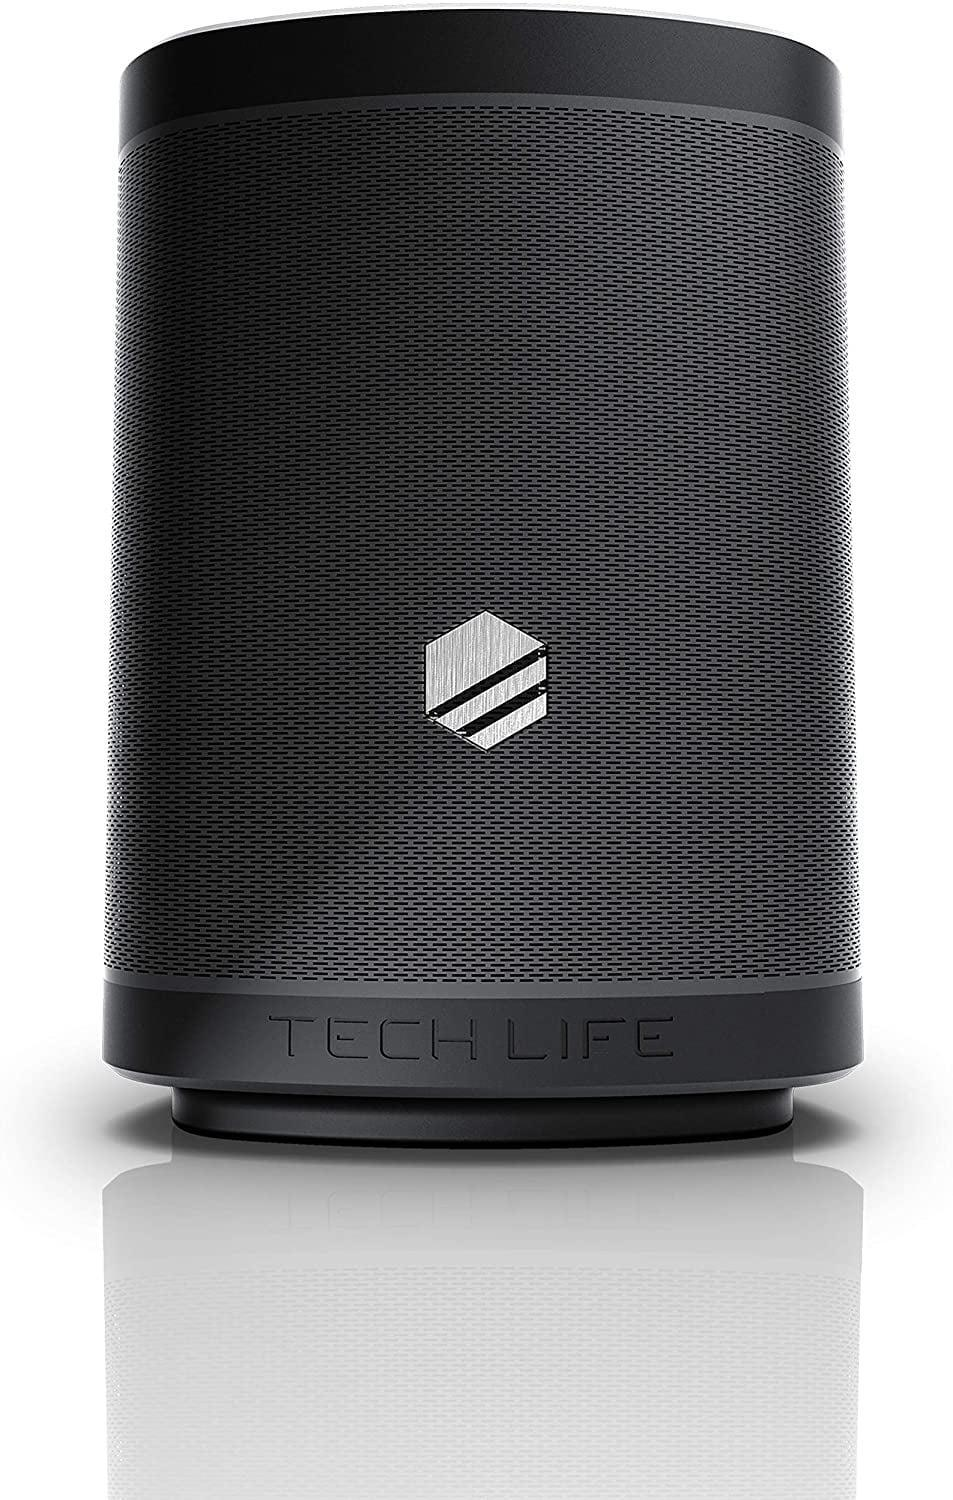 <p>Founders Allan and Nick created the <span>Tech-Life Boss Portable Bluetooth Speaker</span> ($150, originally $190) for bass-lovers and music mavens. It's a portable Bluetooth speaker that's perfect for pool parties, BBQs, tailgates, and so much more. The splash-proof, durable speaker can connect to multiple speakers and devices for optimal sound and range. It's even a portable power bank so you can keep your smartphones charged at all times. </p>